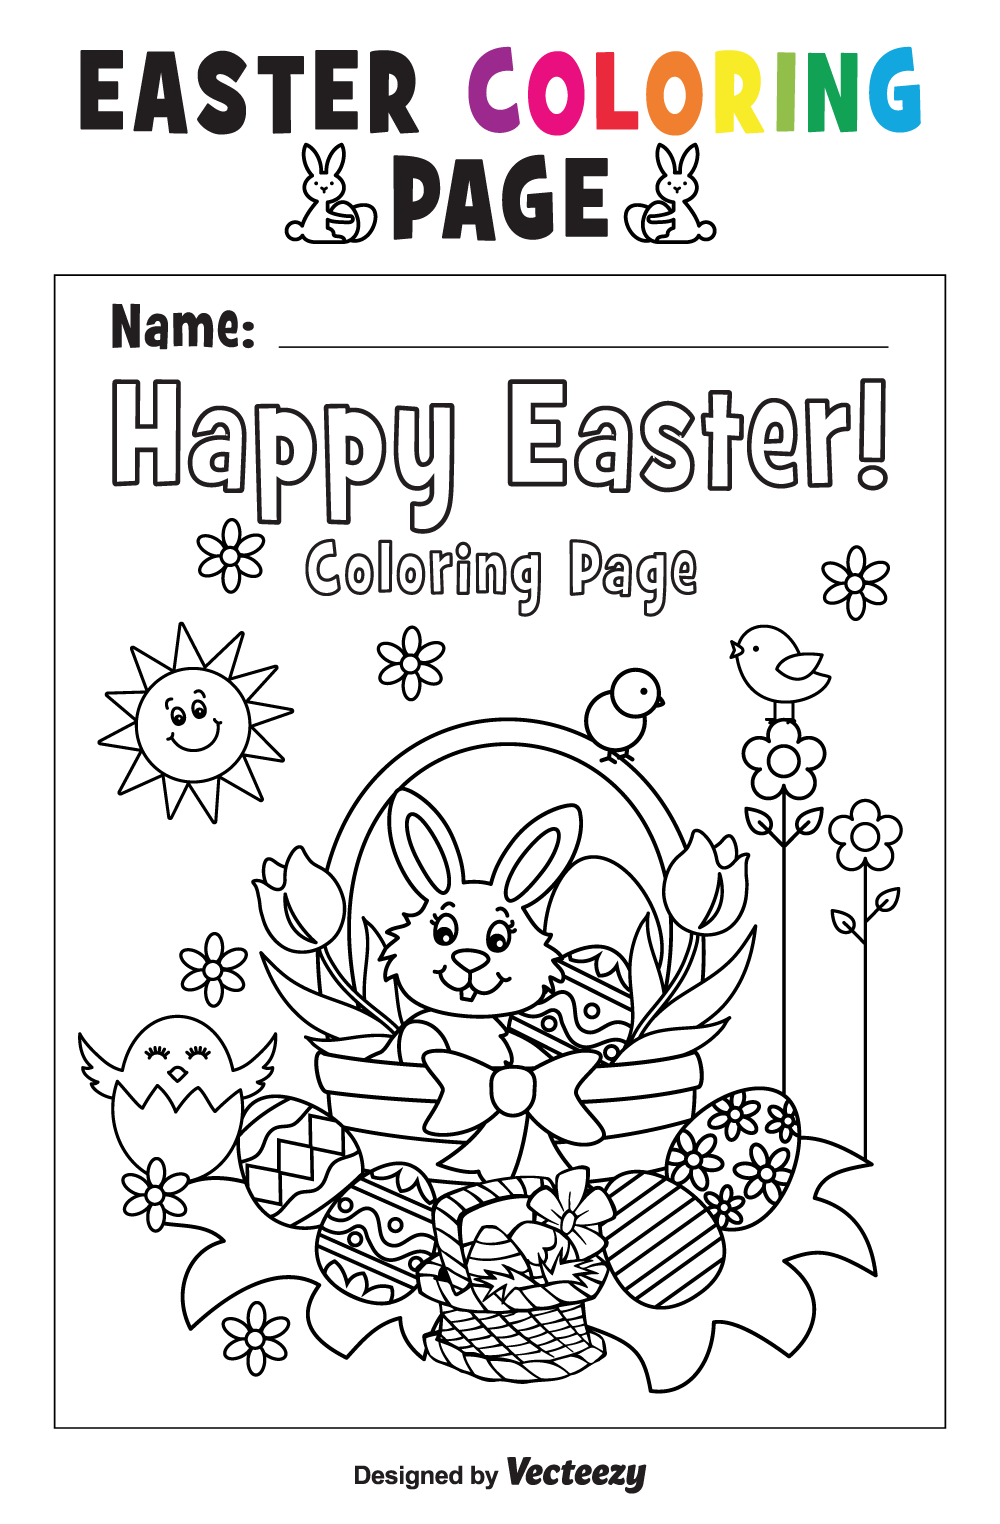 Easter Dice Game Game Idea Free Printable Easter Coloring Pages Printable Easter Coloring Pages Easter Colouring